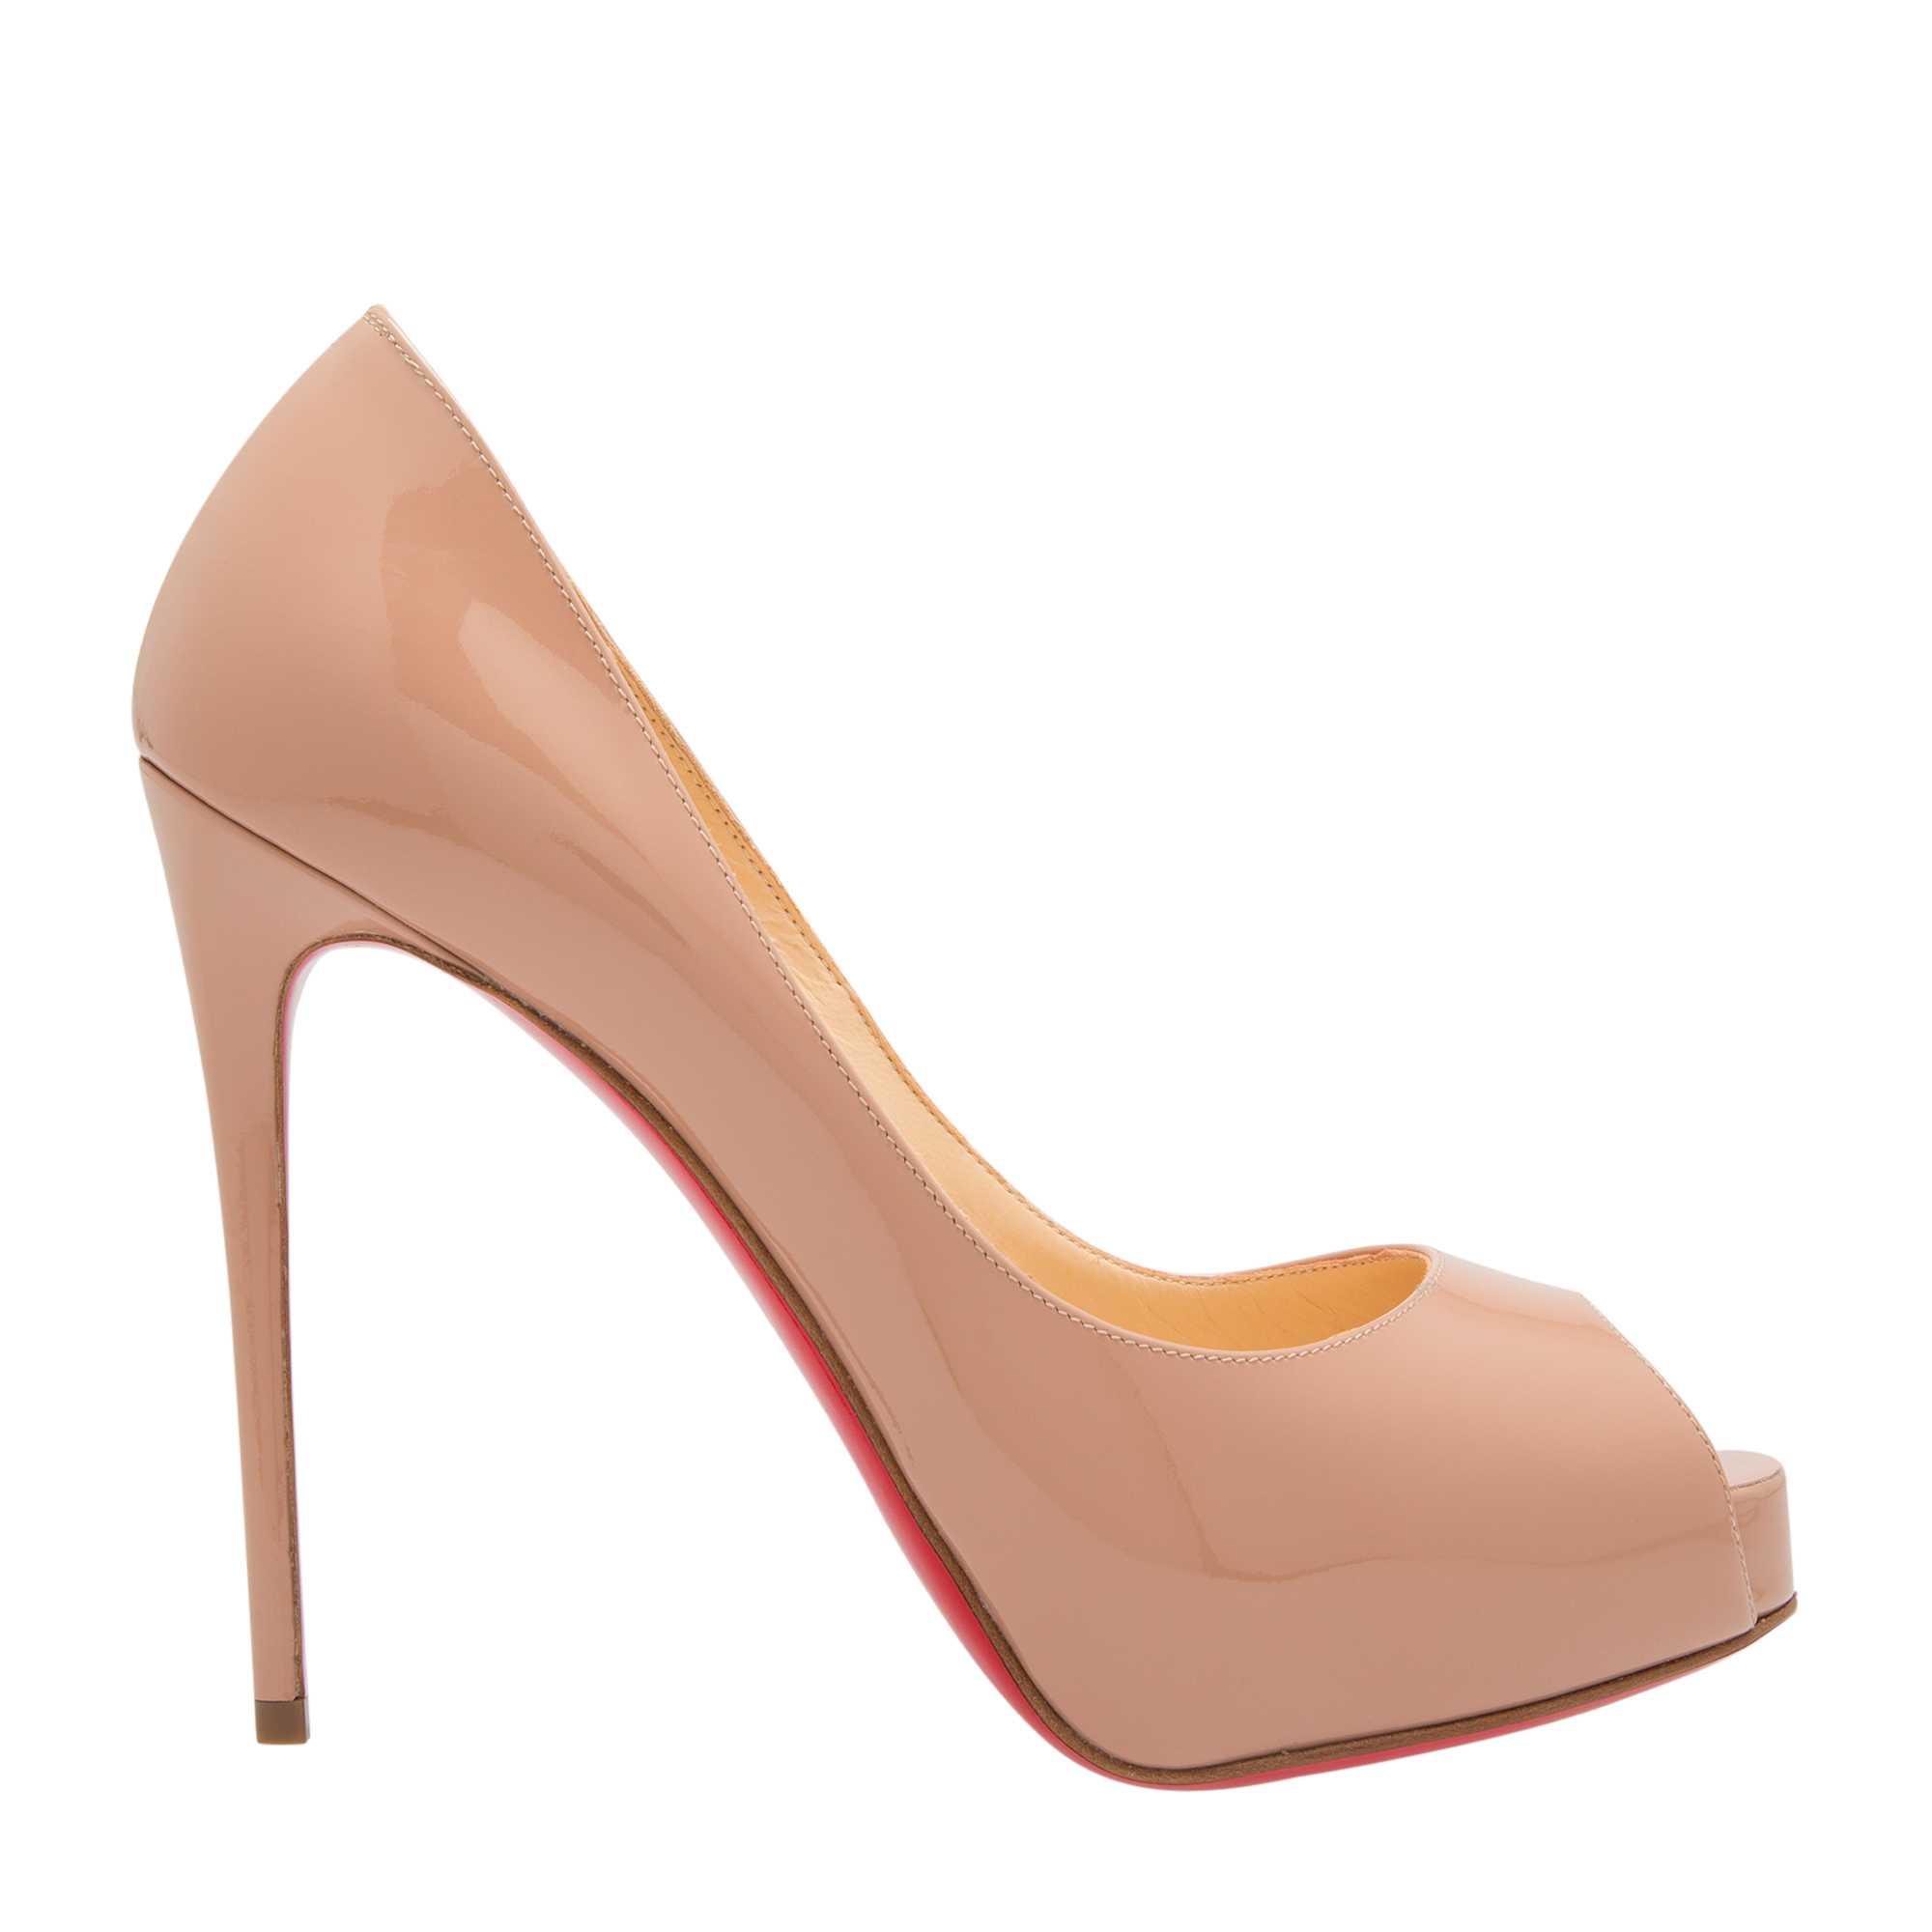 New Very Prive 120 pumps